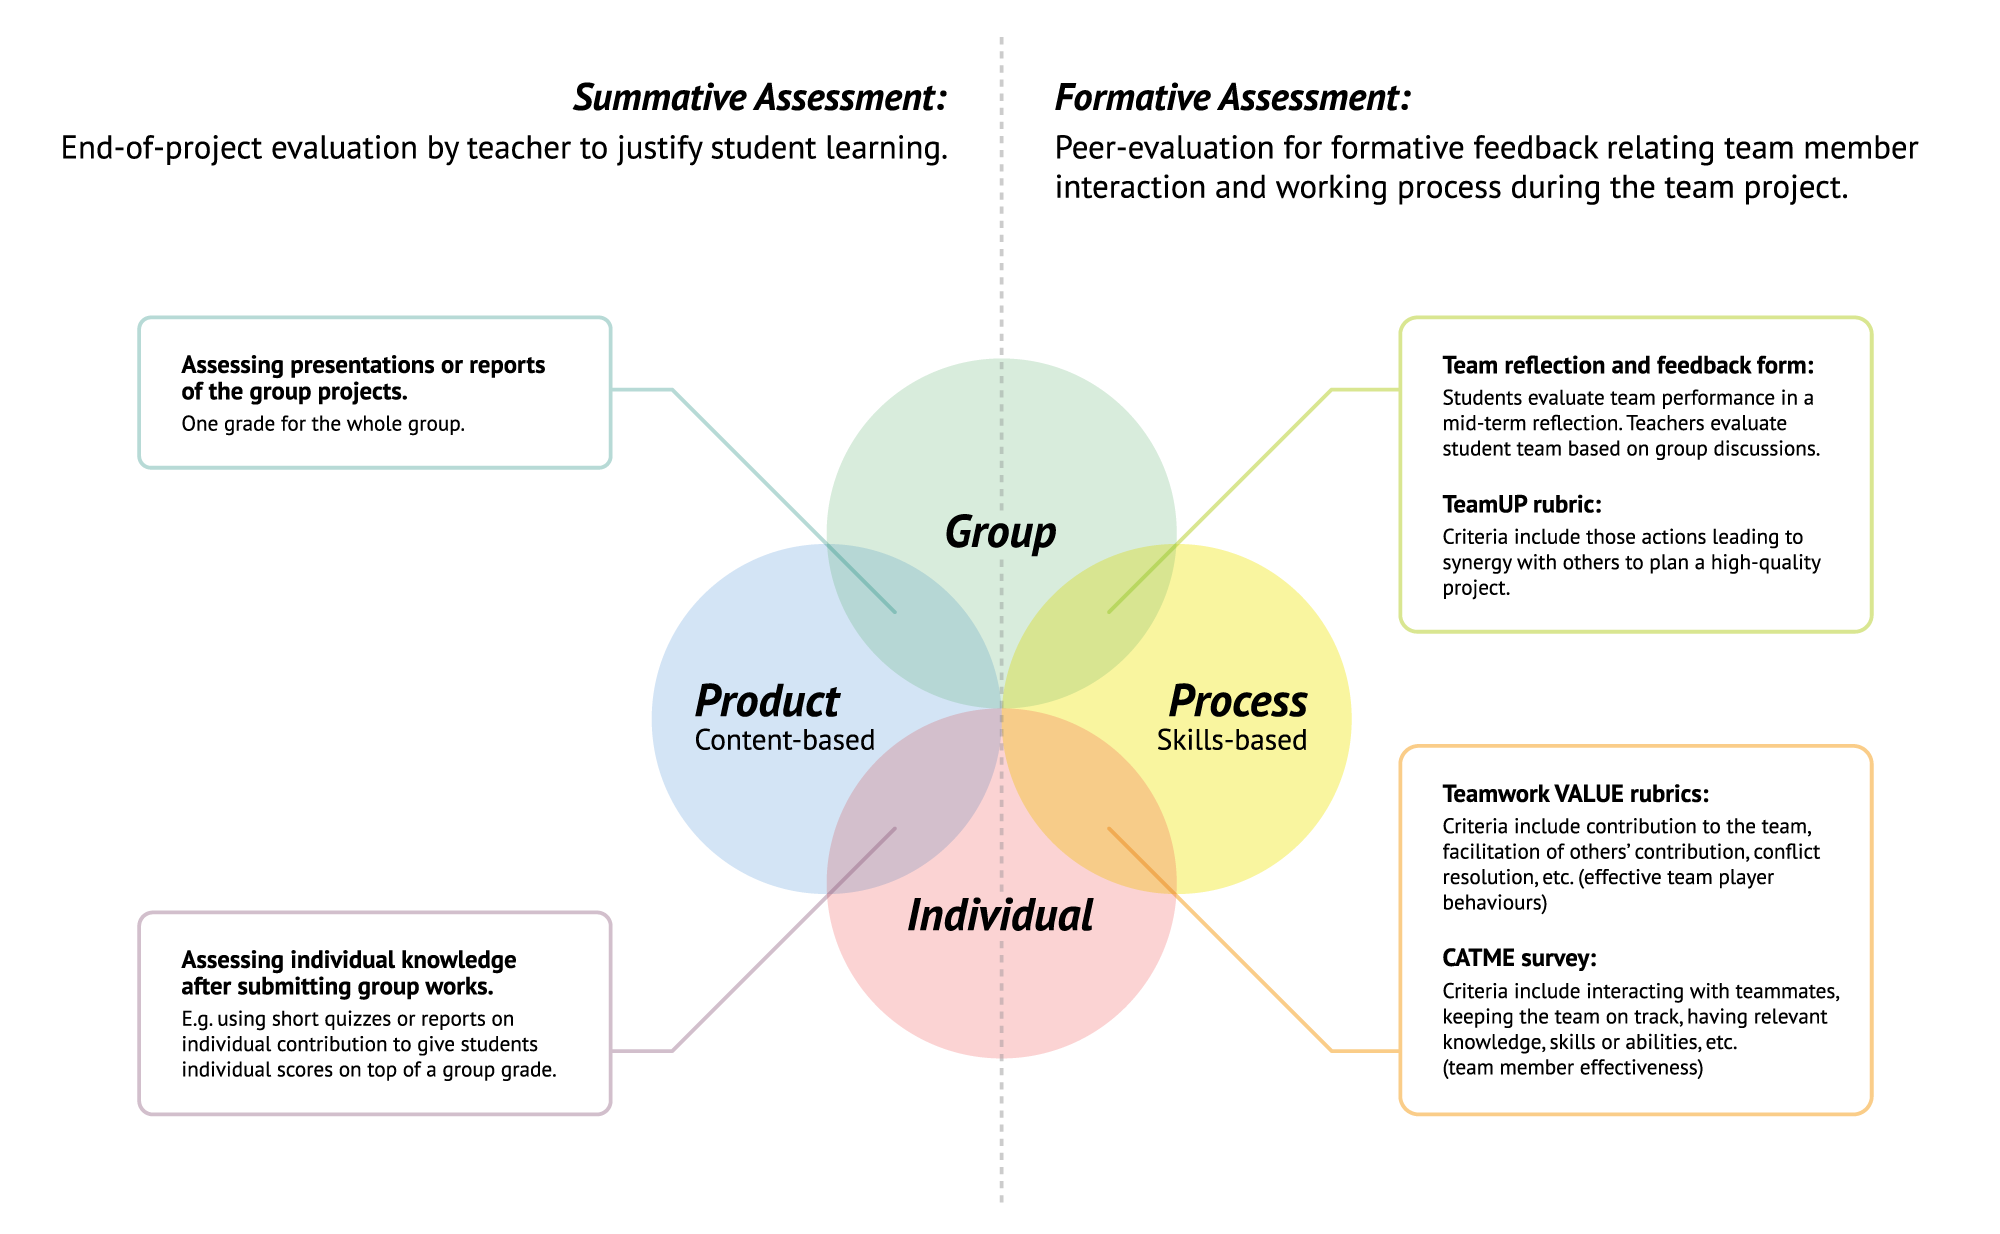 Teamwork assessment and rubric